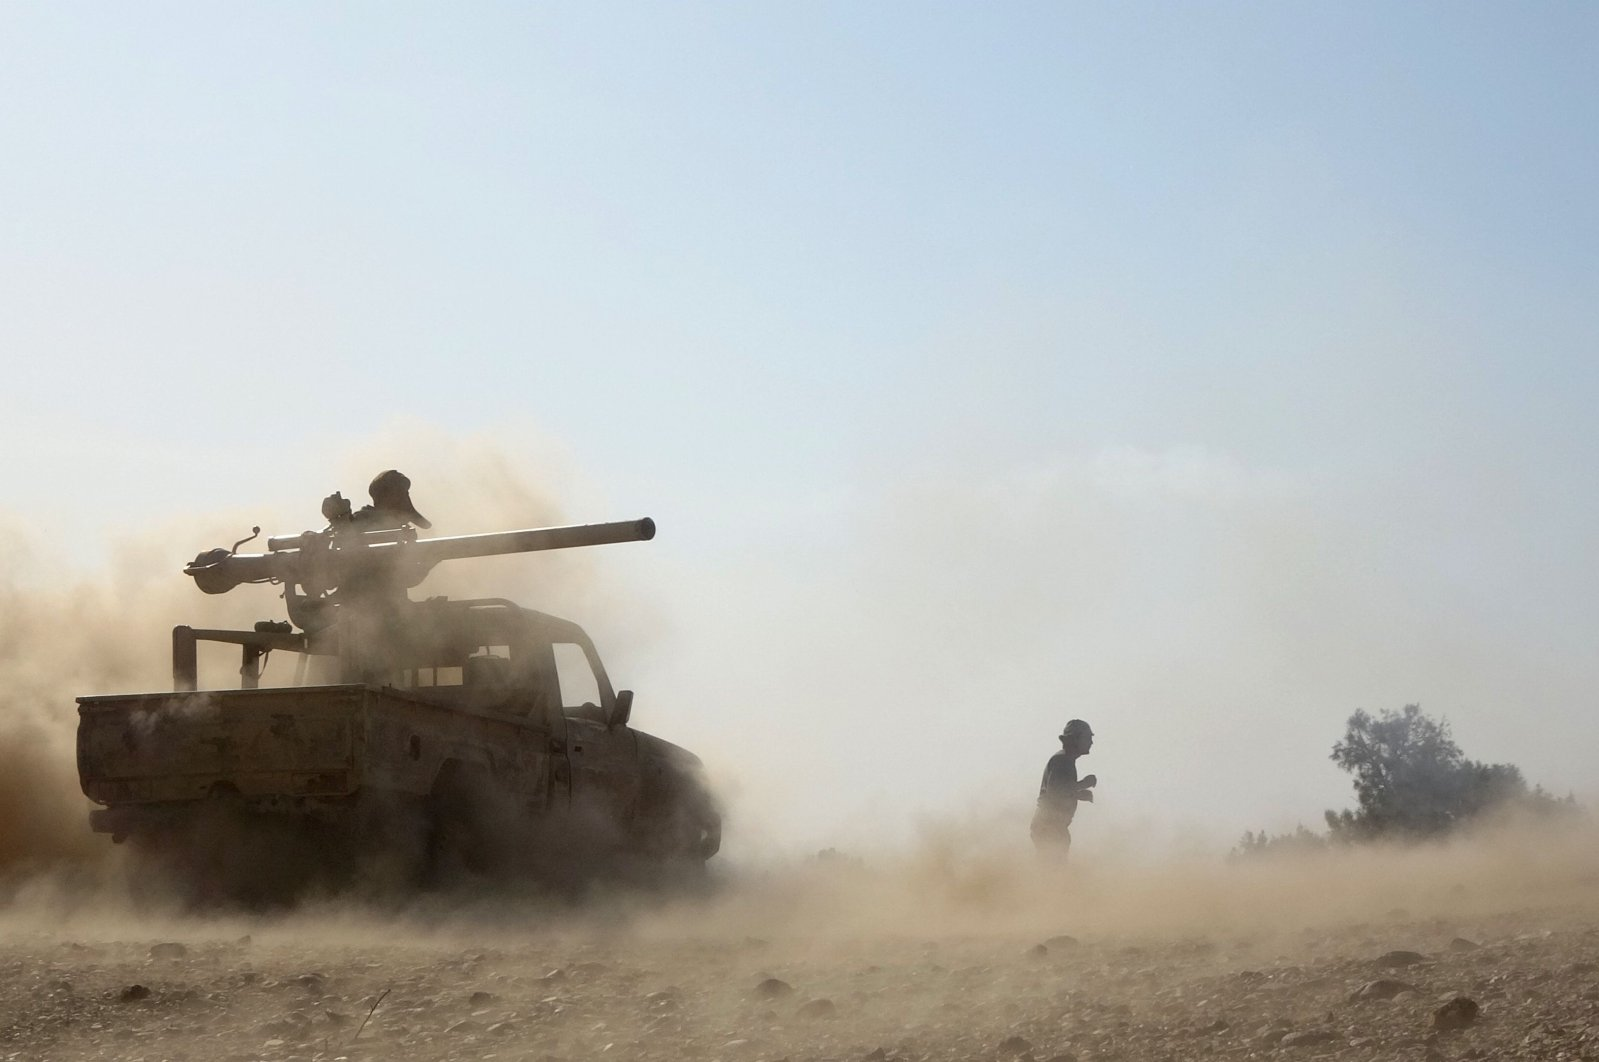 Saudi-backed government troops repel a Houthi rebel offensive on oil-rich Marib, some 120 kilometers (75 miles) east of Yemen's rebel-held capital Sanaa, on Feb. 14, 2021. (AFP Photo)